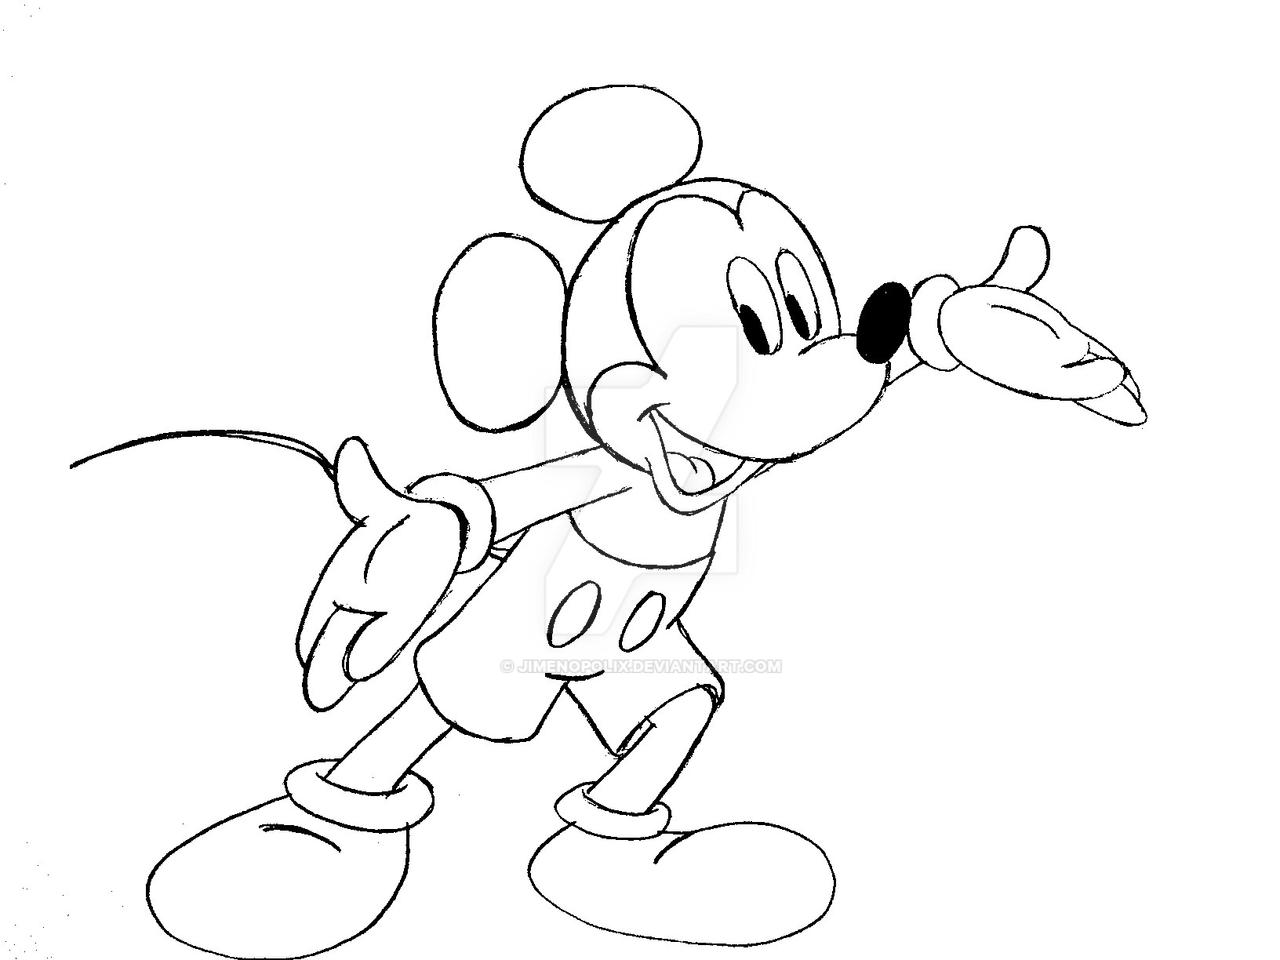 Line Art Mickey Mouse : Another mickey mouse drawing by jimenopolix on deviantart